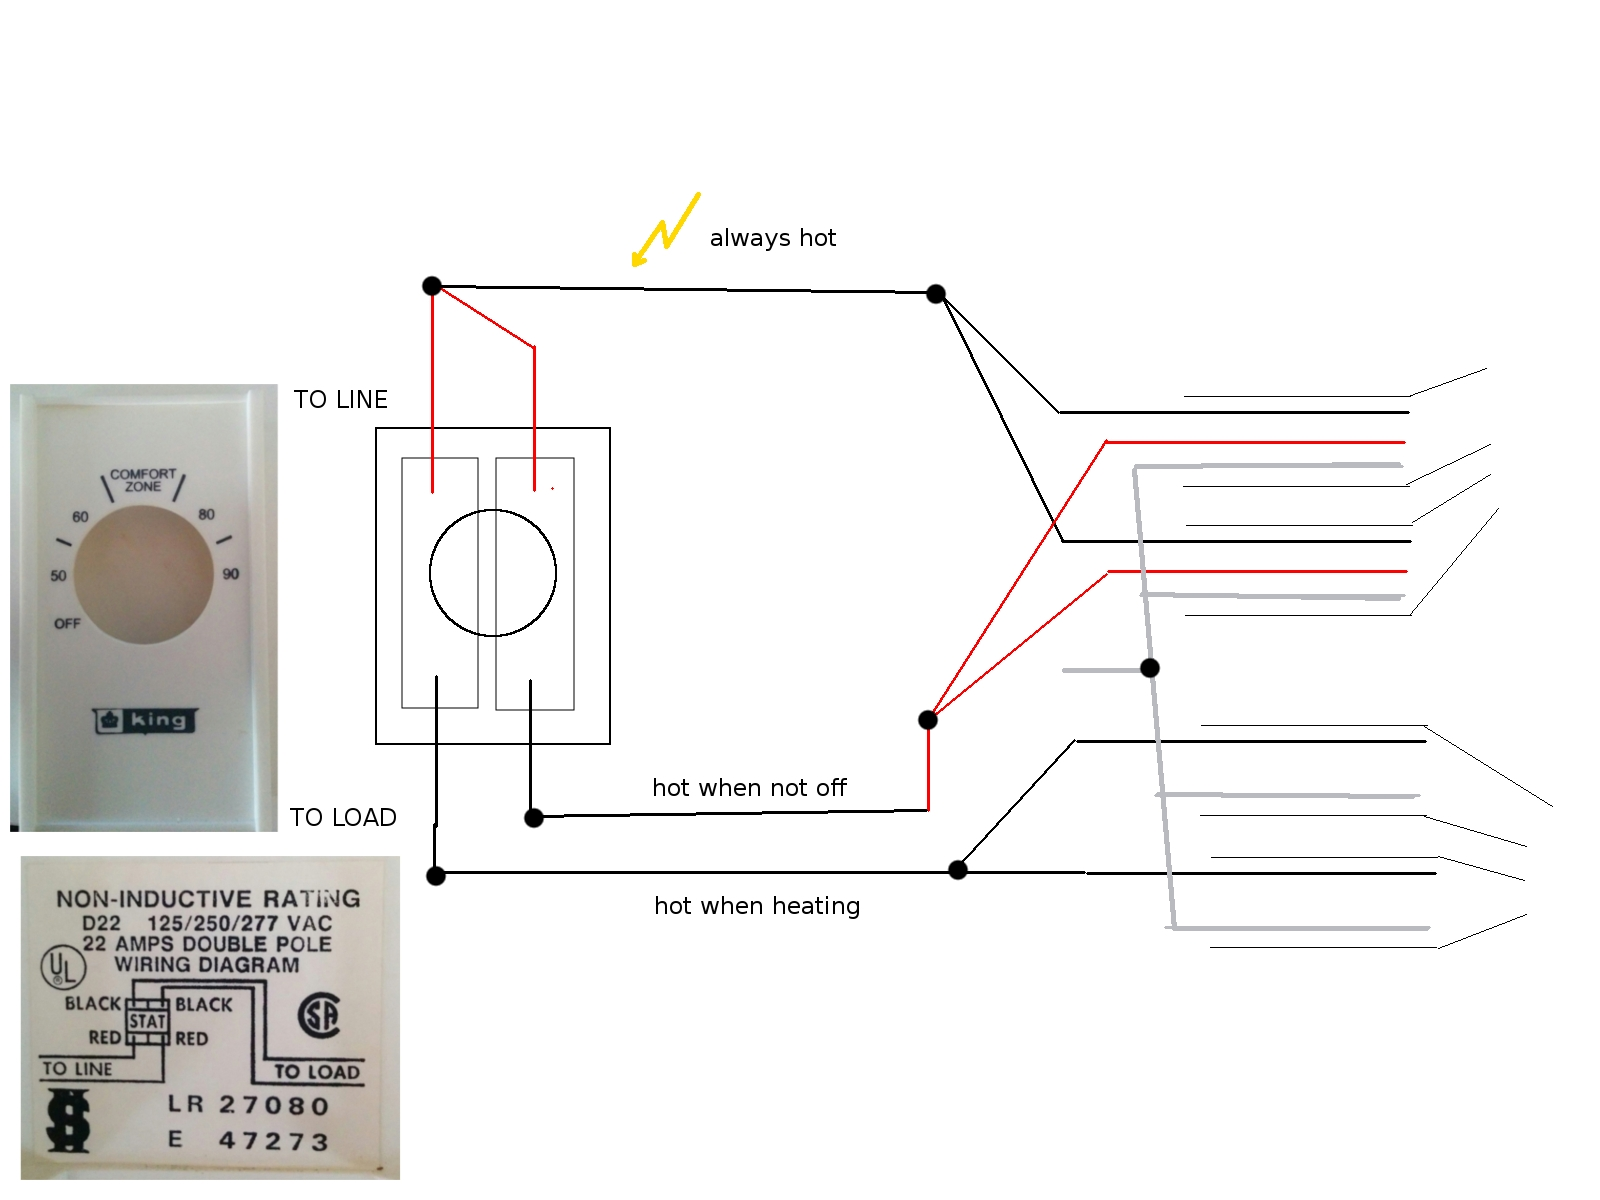 double pole thermostat wiring diagram Download-double pole thermostat wiring diagram Download H2K7x In Double Pole Thermostat Wiring Diagram 4 4-o